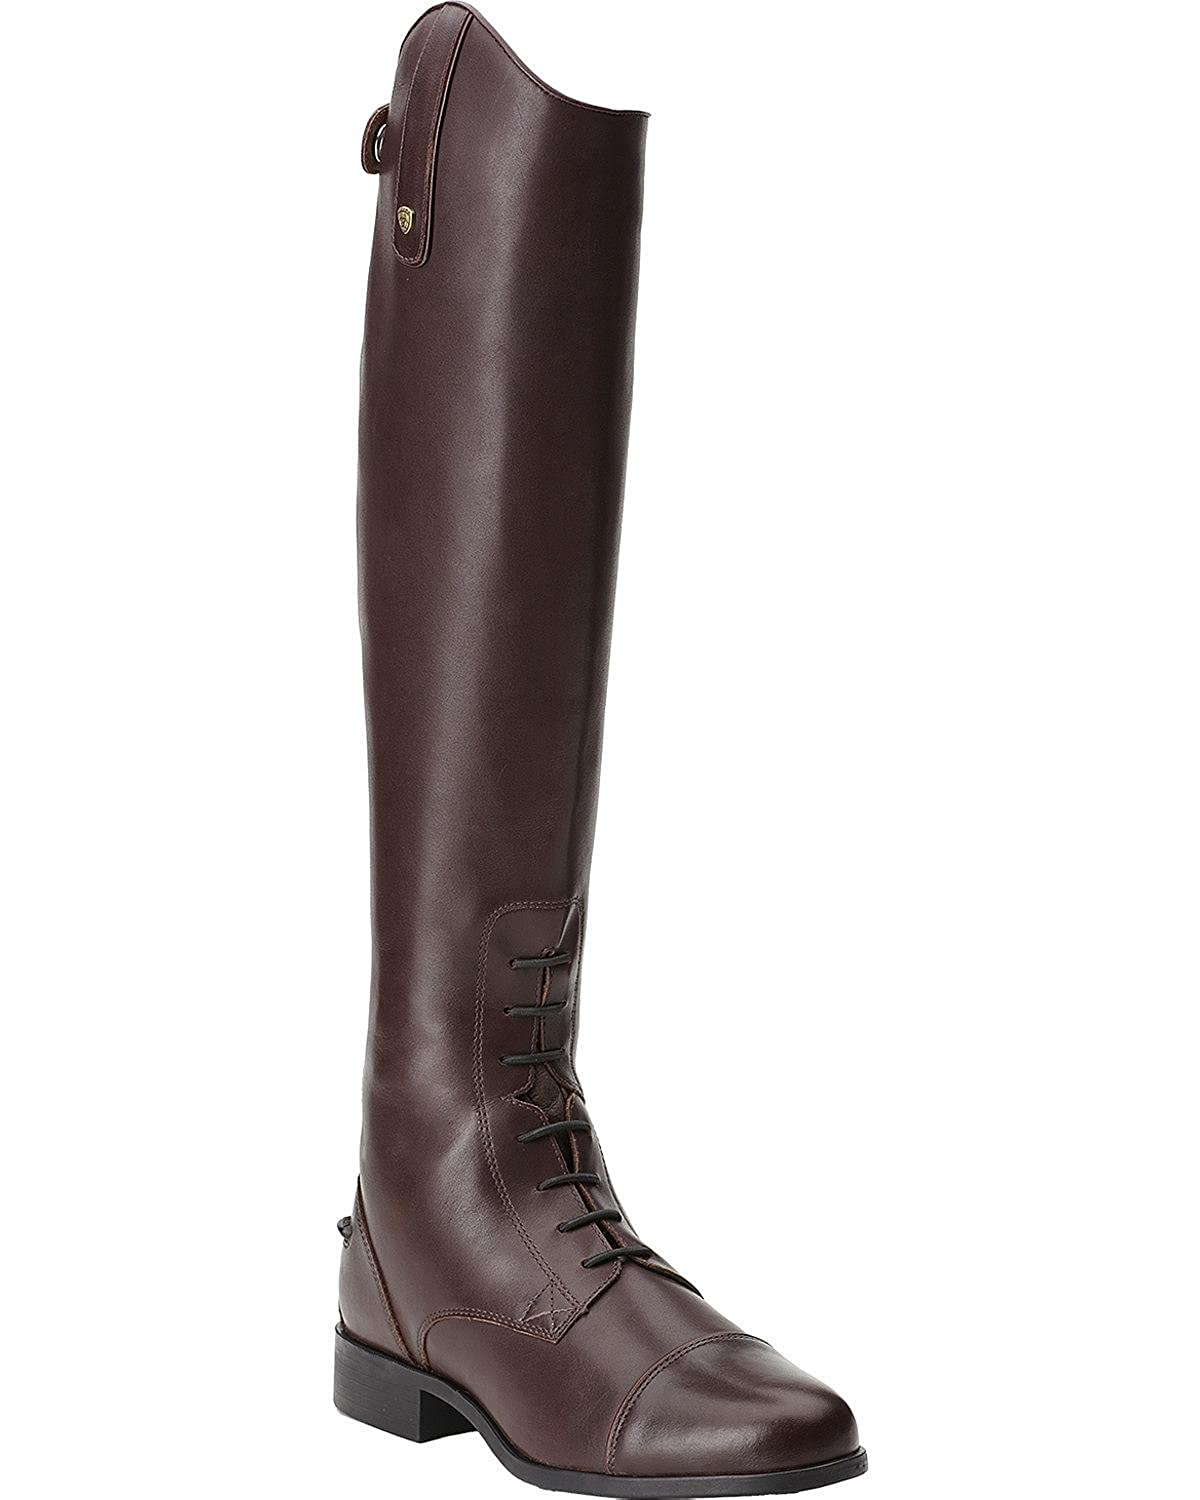 Ariat Heritage Contour Riding Boot - Sienna: Amazon.co.uk: Shoes ...